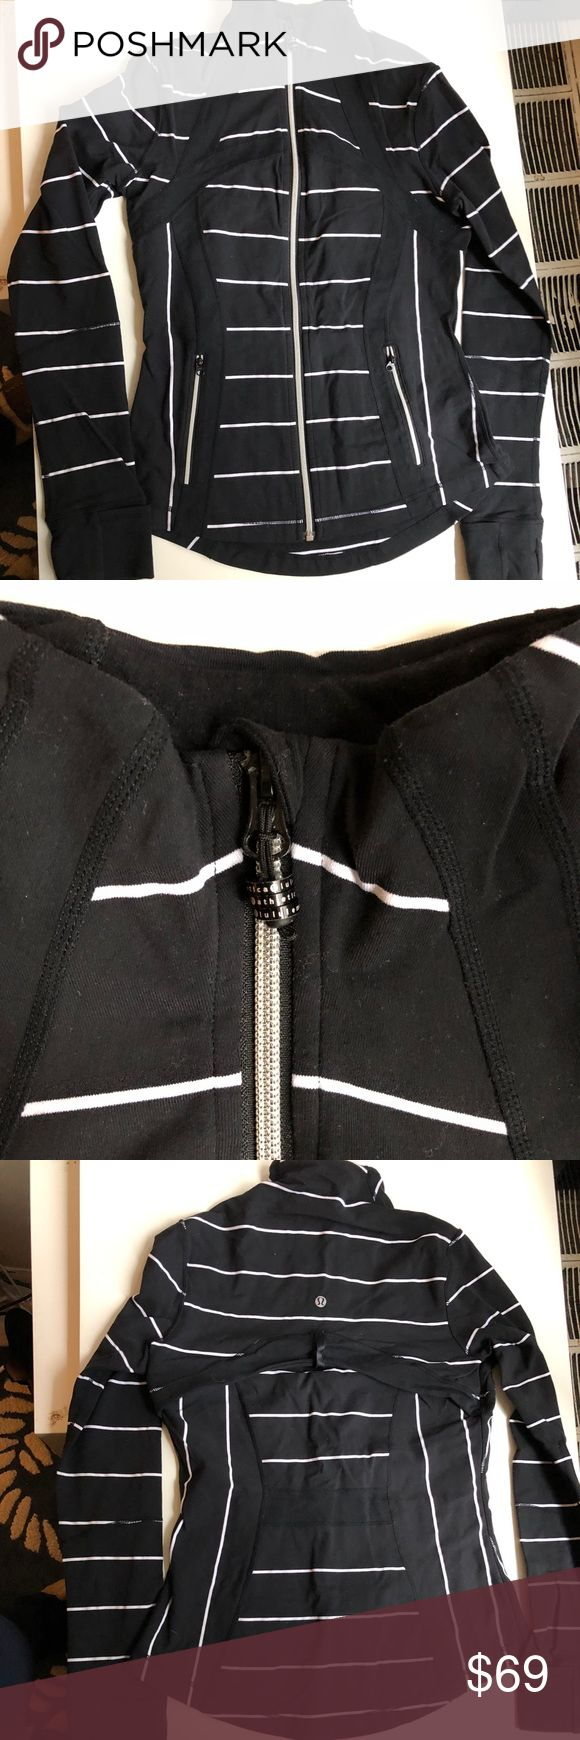 Lululemon RARE Black&White Stripe Define Jacket 8 Very rare pattern! Lululemon Define Jacket in a beautiful back with white stripes. Size 8. Later on this warm, lightweight jacket before you hit the hiking trails or head to the studio. Made with Luon fabric that is soft, sweat-wicking and 4-way stretch. lululemon athletica Tops Sweatshirts & Hoodies